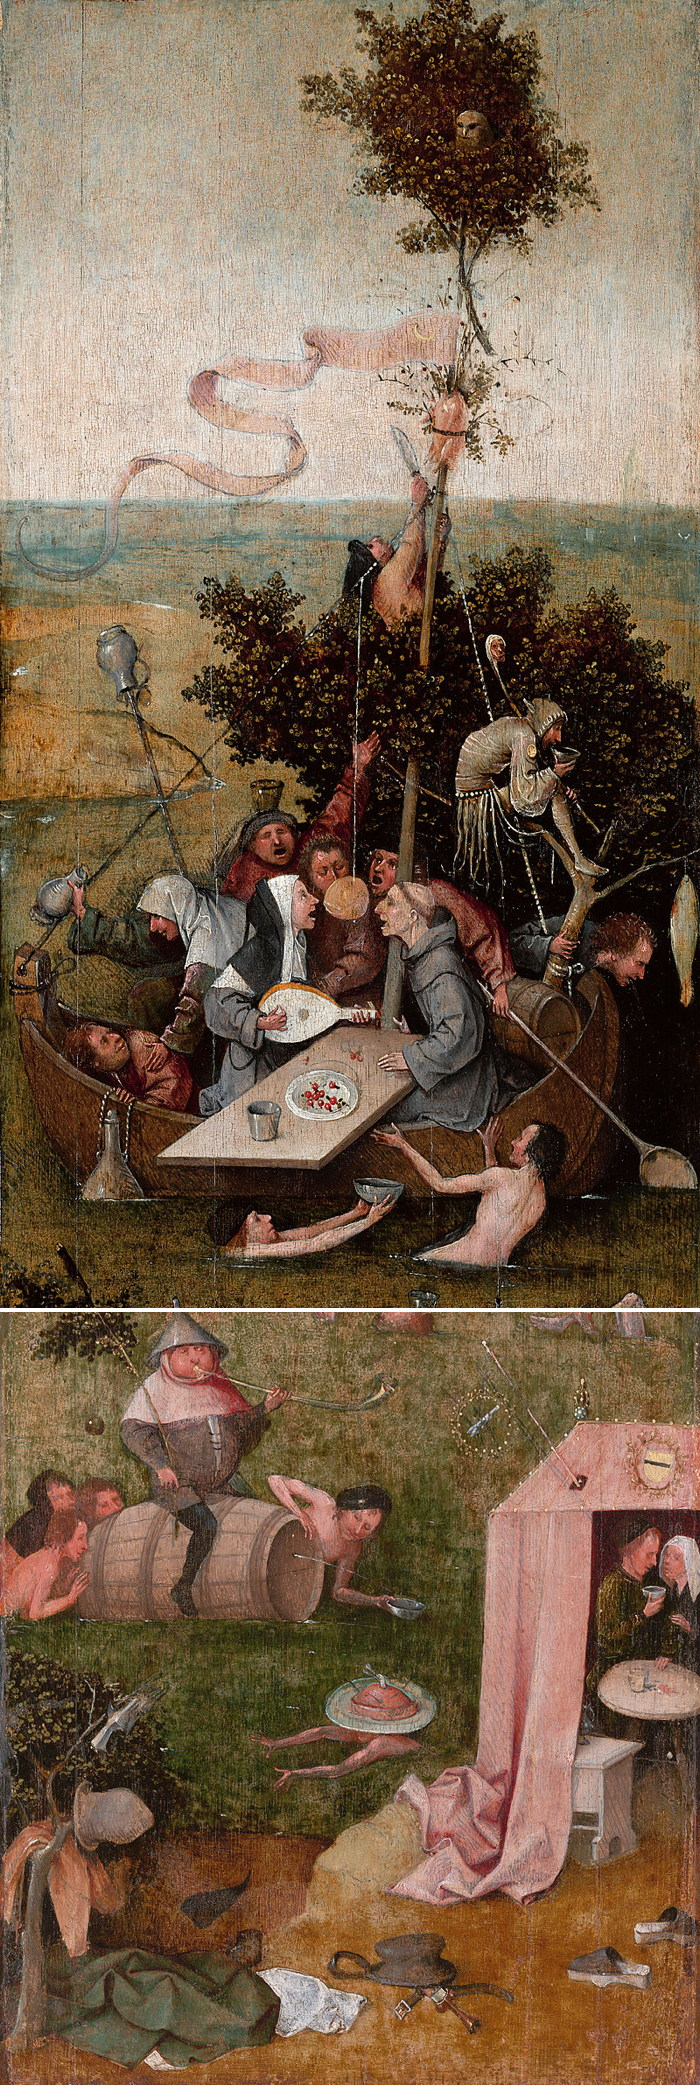 bosch_ship_of_fools_gluttony_lust_united.jpg